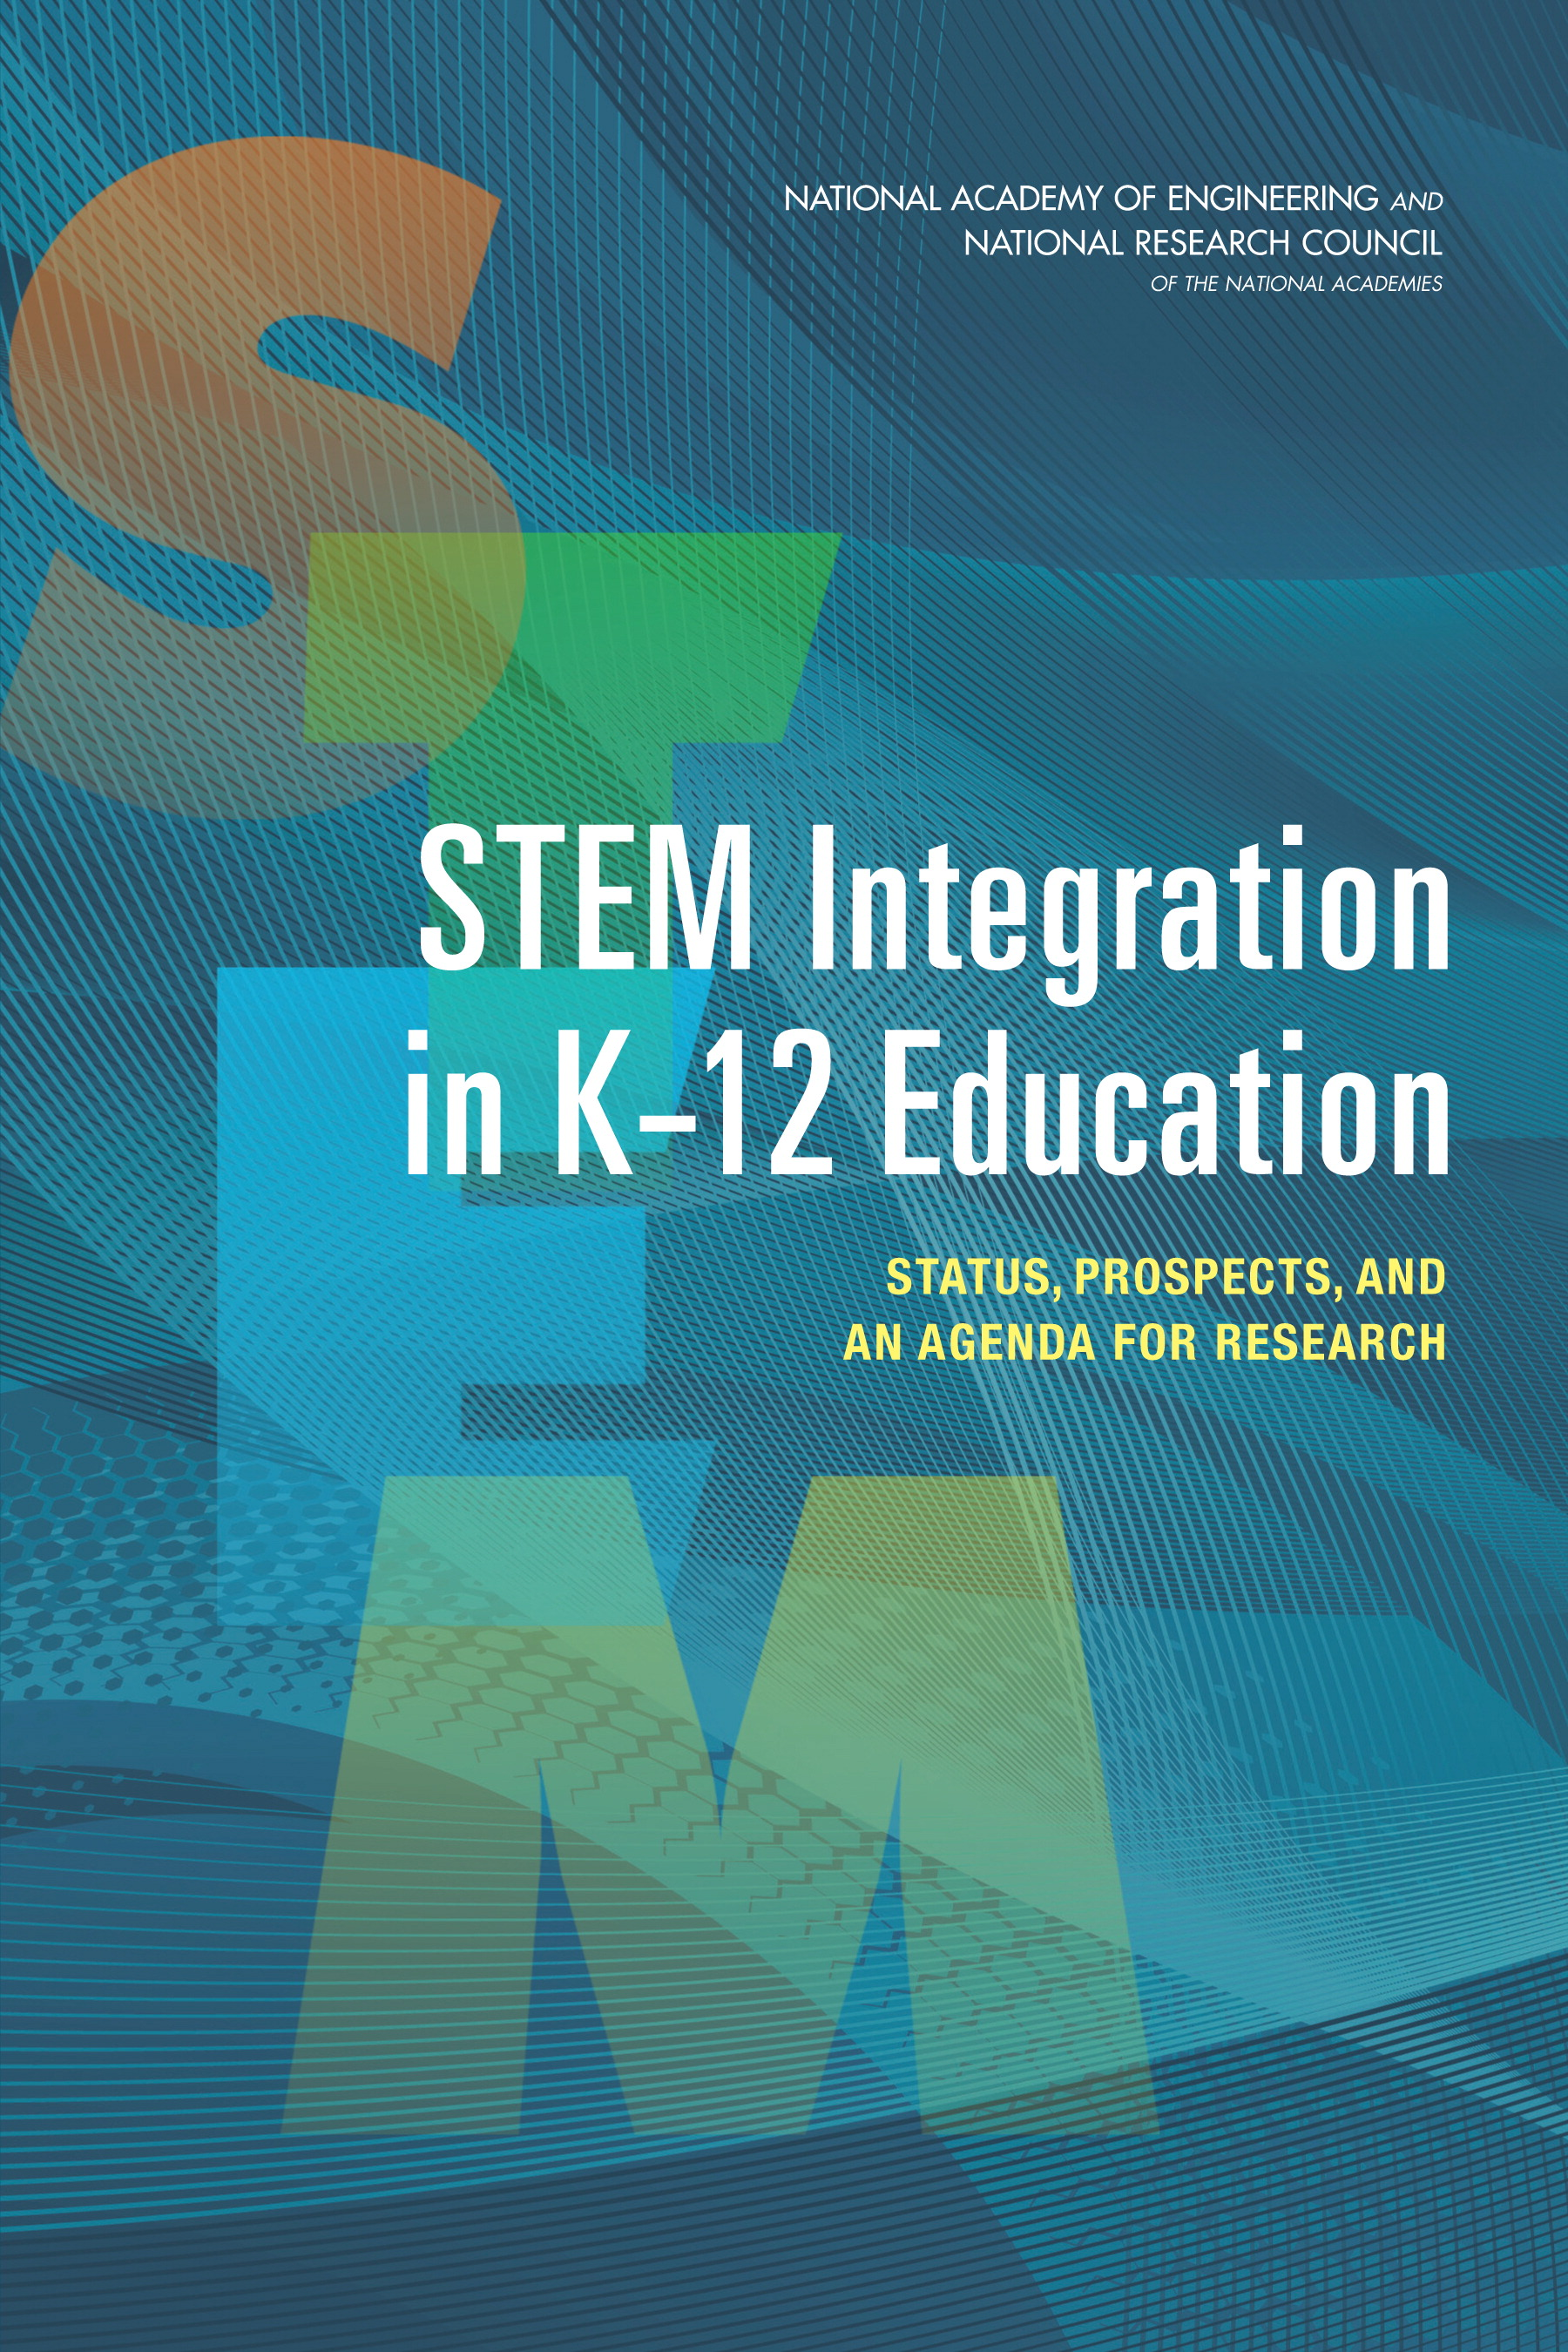 STEM Integration cover